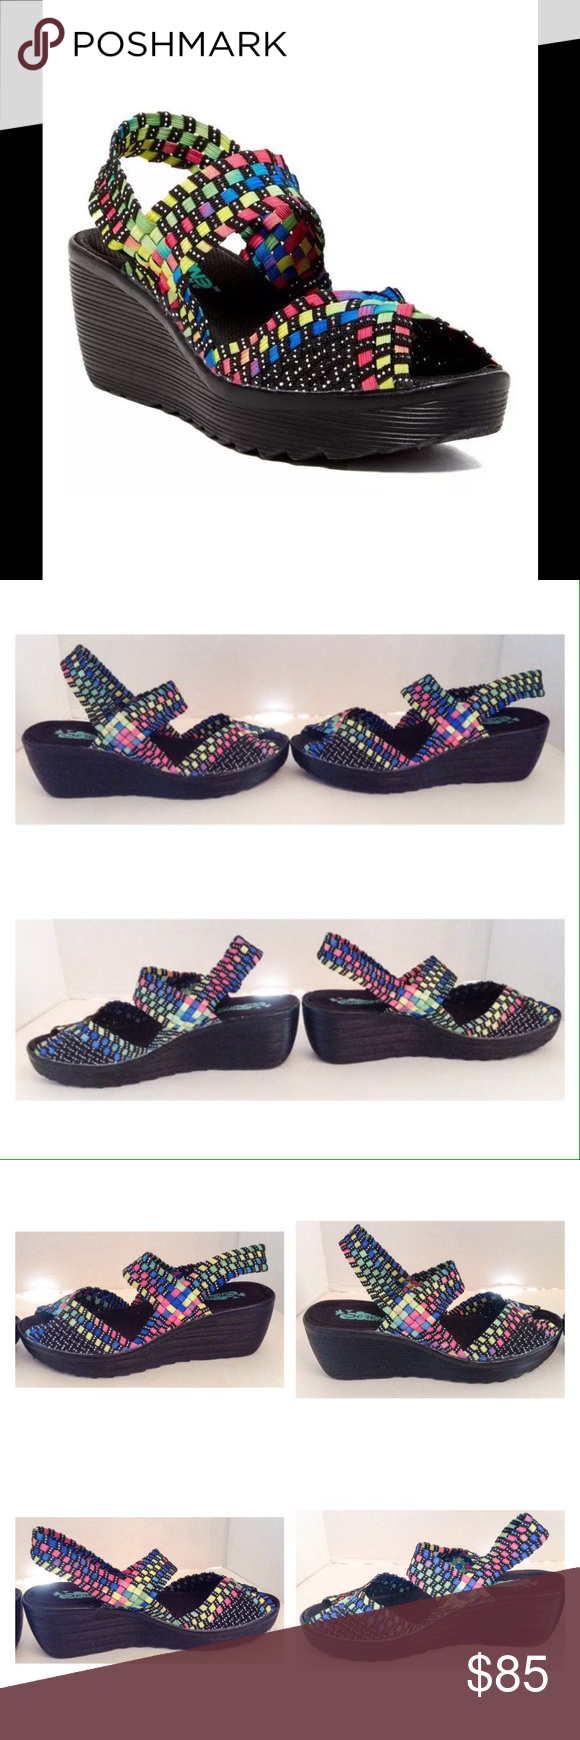 """Serene Fantaso Multi Color Wedge Sandal Serene Fantaso black multi color wedge sandal.  Size 8 medium.  New with box.  A thick, ruggedly soled wedge lends a generous boost to this stretchy woven design.  Heel approximately 2.5""""; platform:  1"""". No trades. Serene Shoes Sandals"""